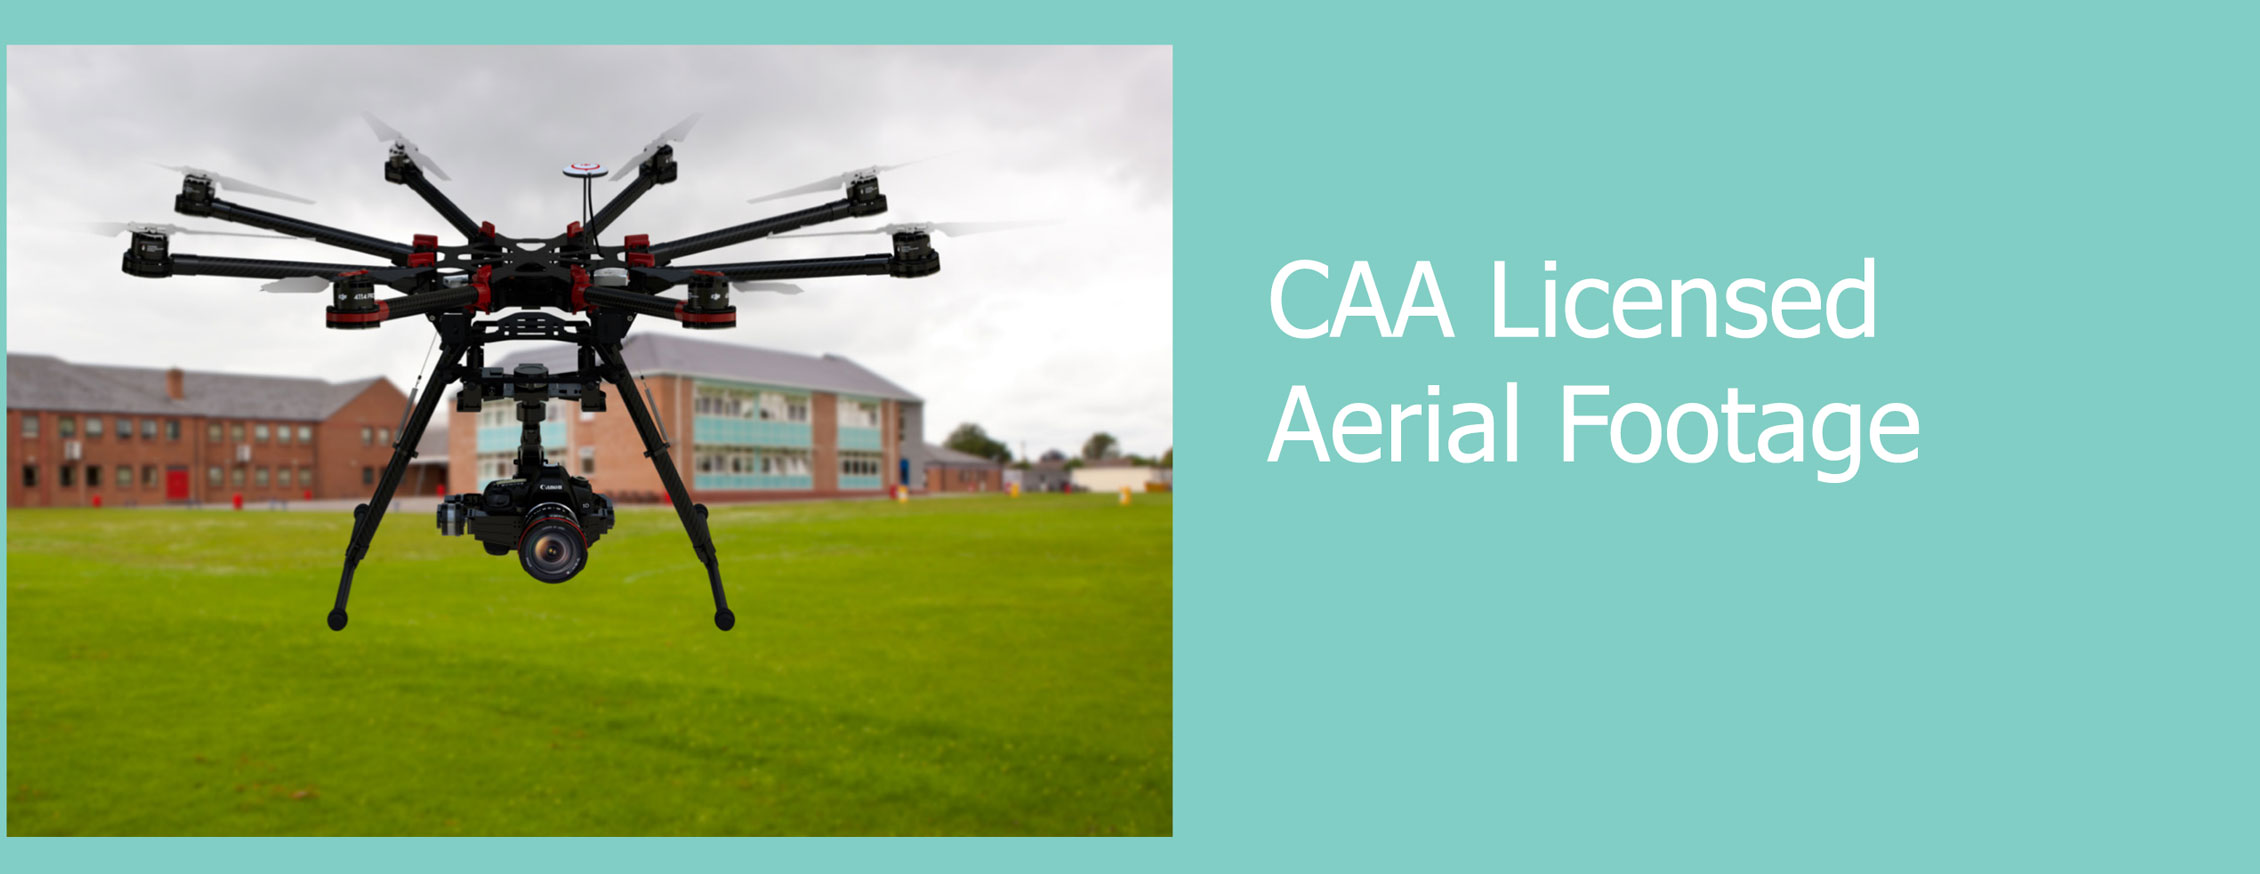 CAA licensed aerial footage